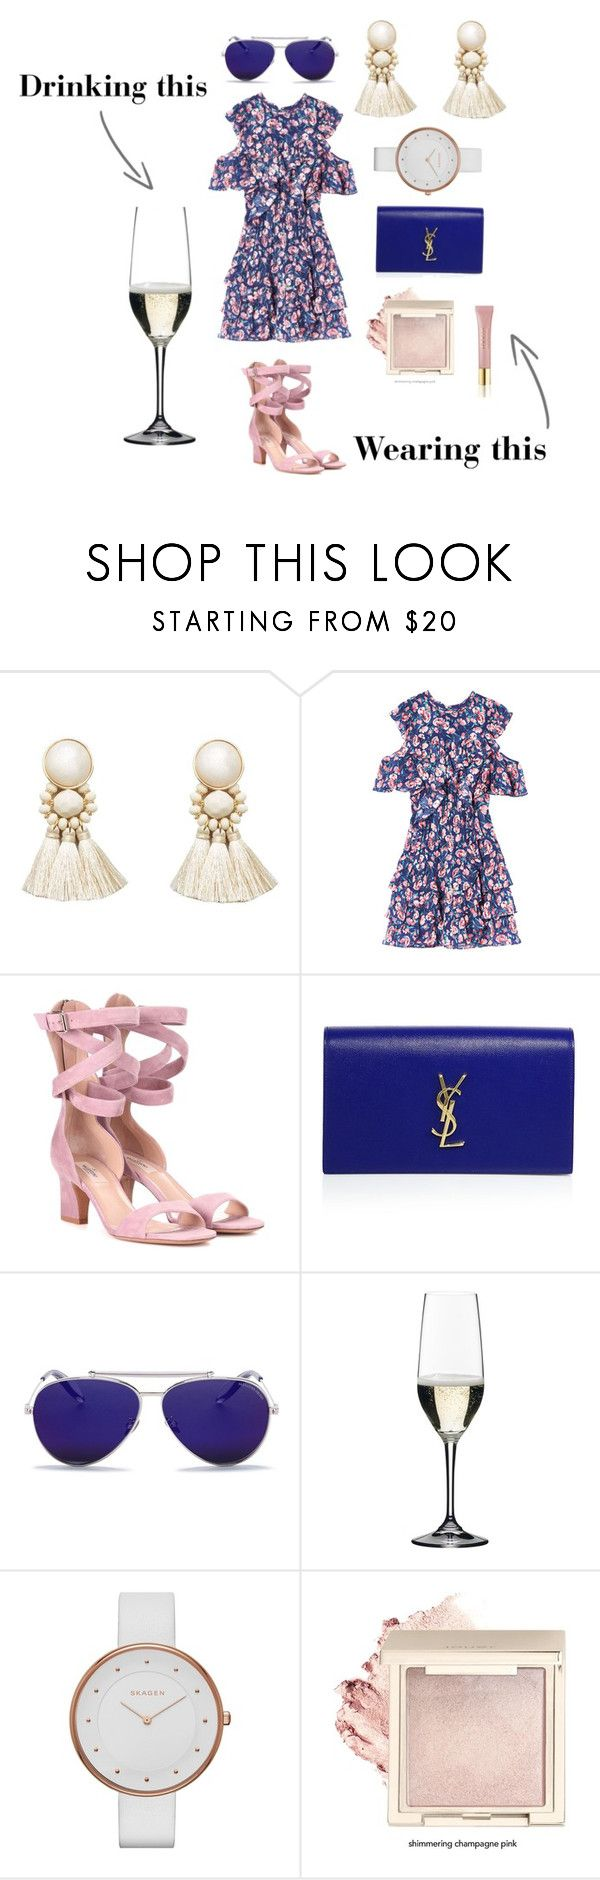 """A Champagne Tasting Look for Schlumberger Sekt Cellar"" by stylists-1 on Polyvore featuring Violeta by Mango, Valentino, Yves Saint Laurent, Alexander McQueen, Riedel, Skagen and AERIN"